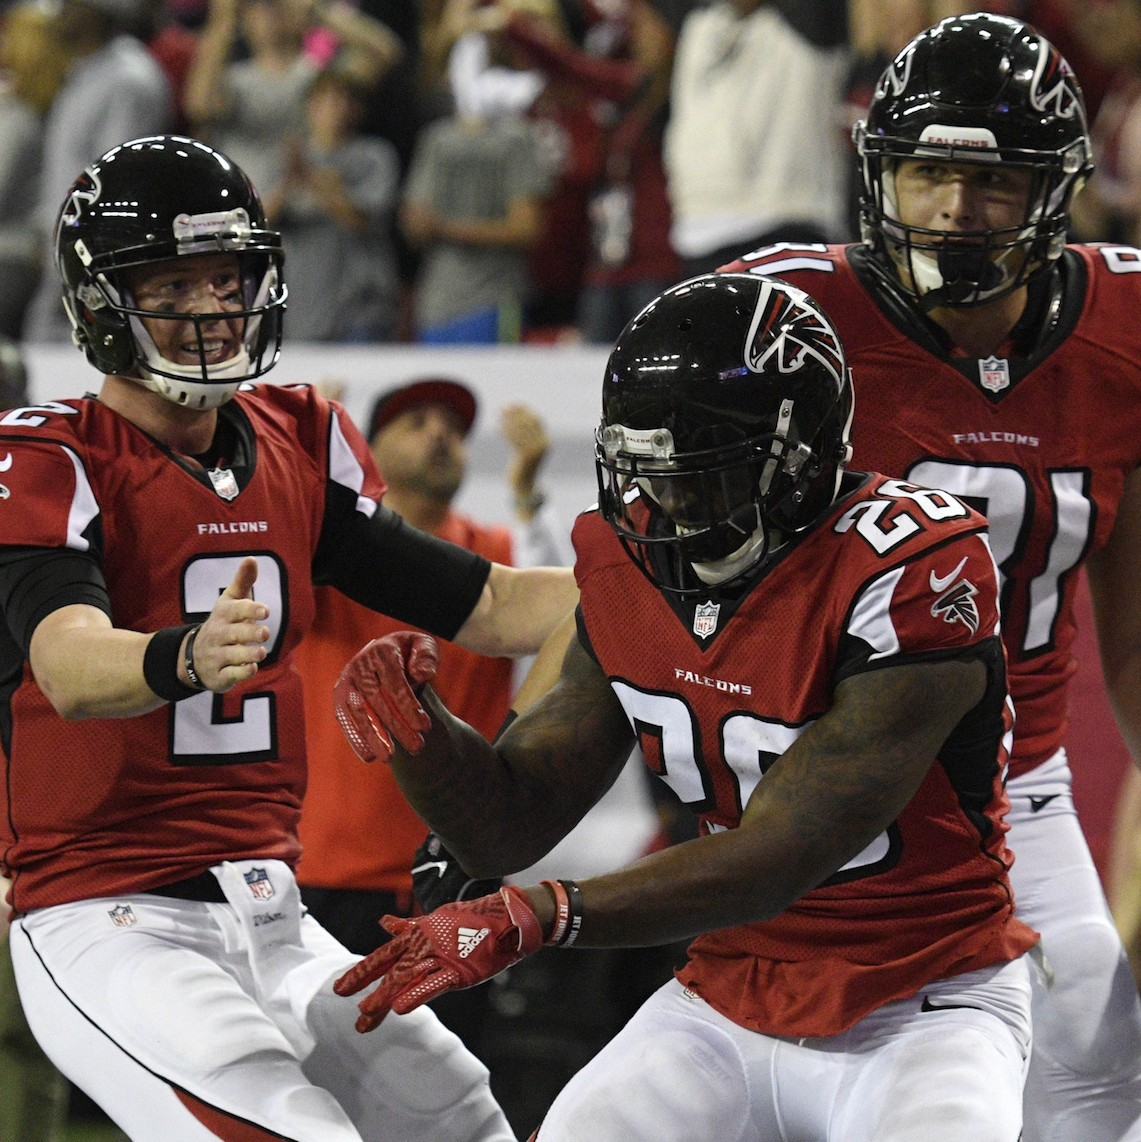 Kyle-shanahans-booming-offense-gives-falcons-keys-to-the-nfc-title-1484936216.jpg?crop=0